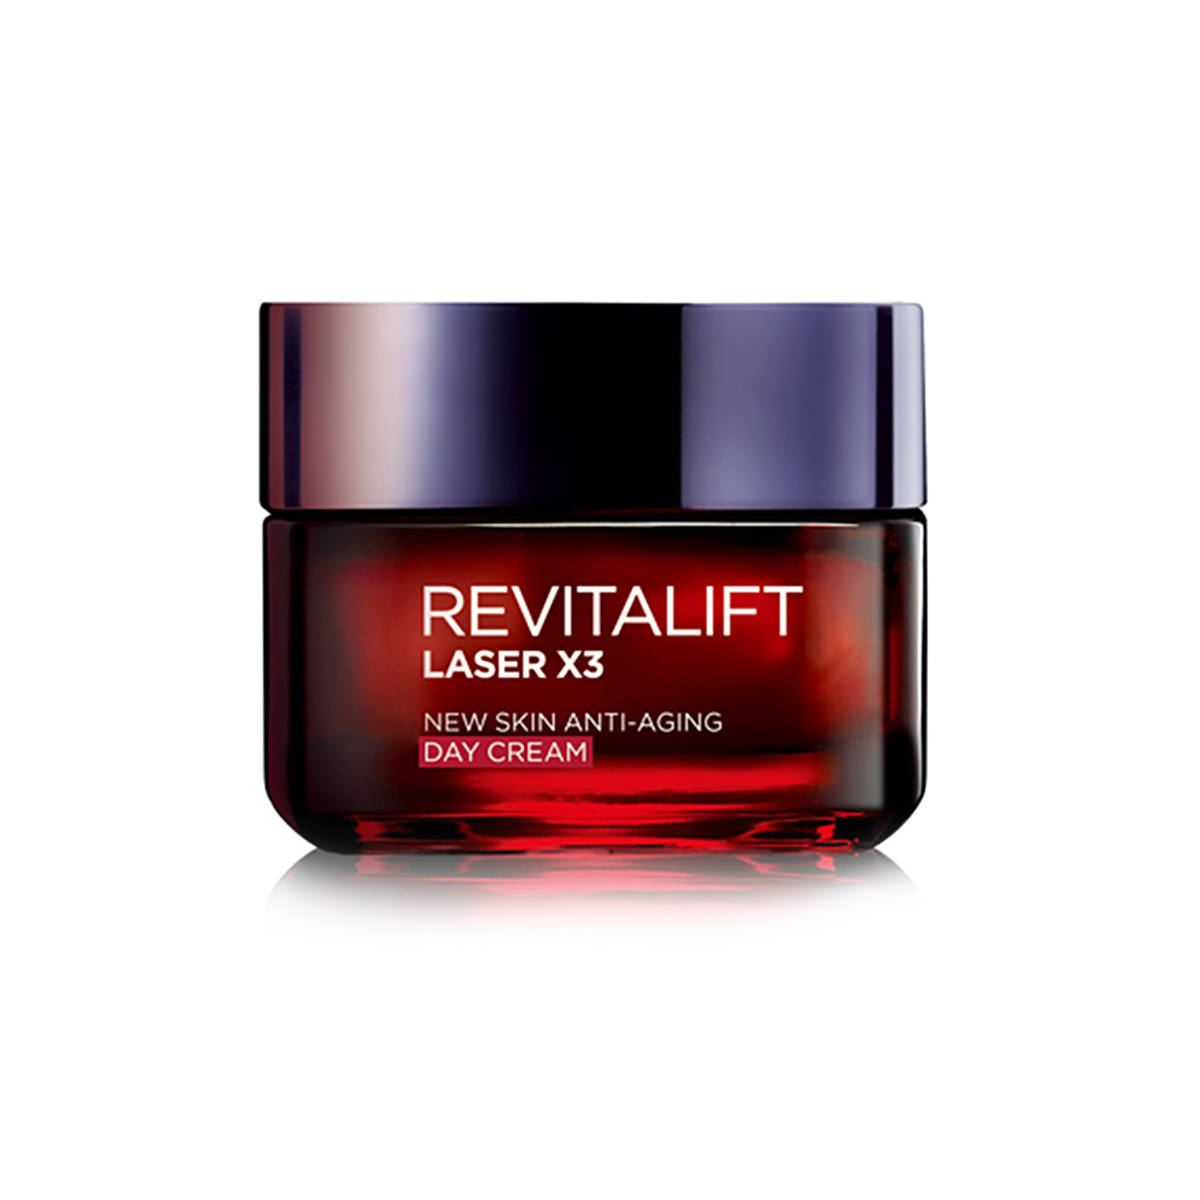 L'oreal Paris - Revitalift Laser X3 New Skin Anti-Aging Day Cream (50 ml)_sfw (1)